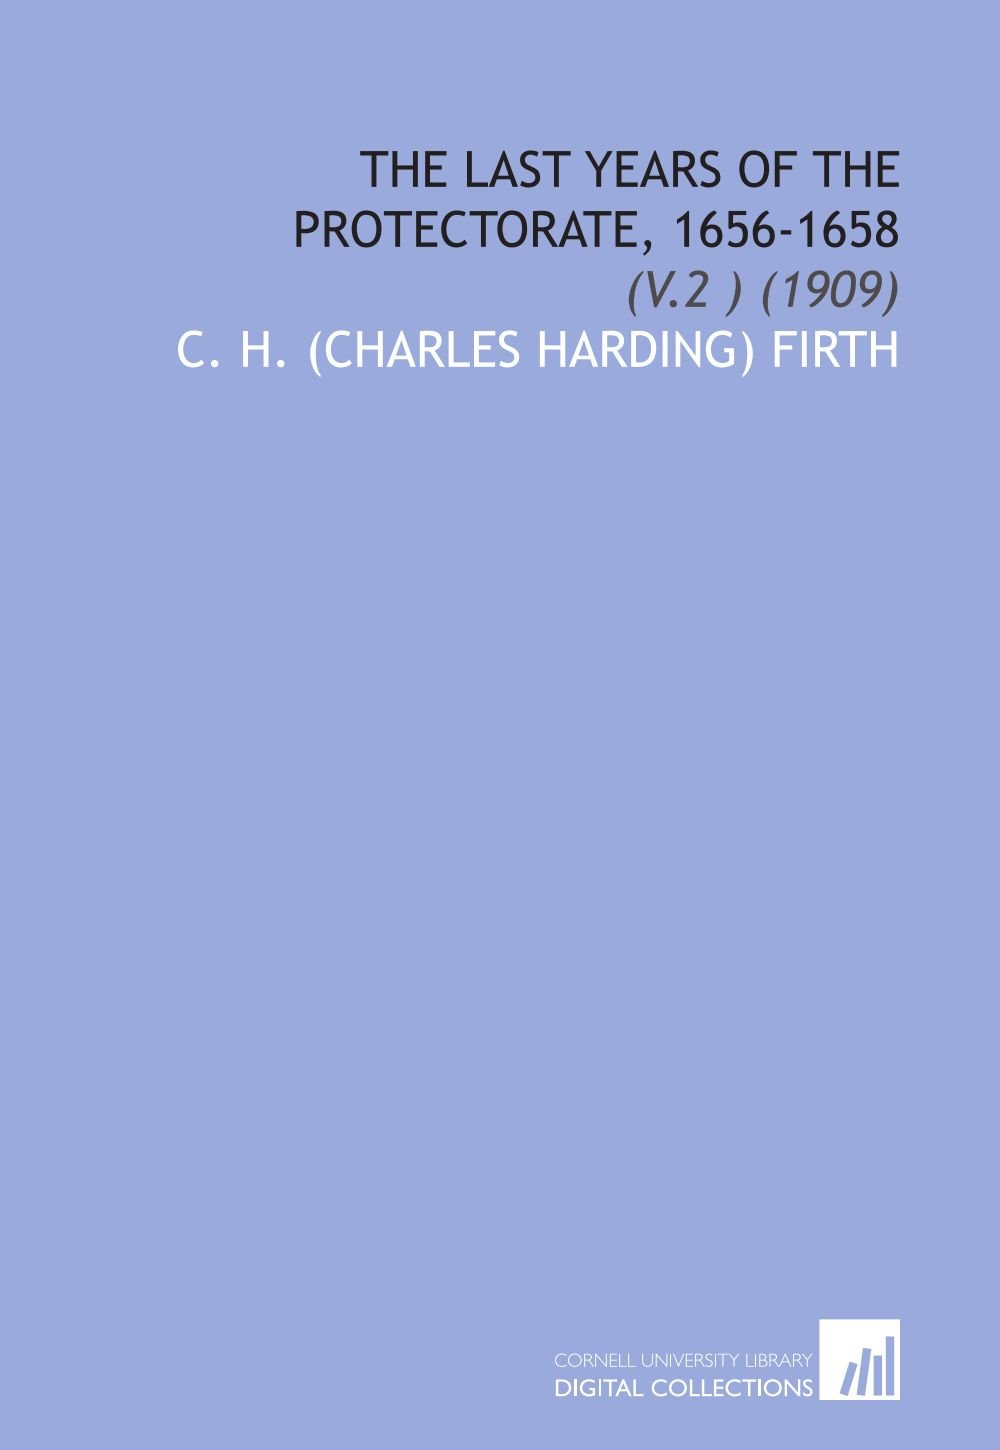 The Last Years of the Protectorate, 1656-1658: (V.2 ) (1909) pdf